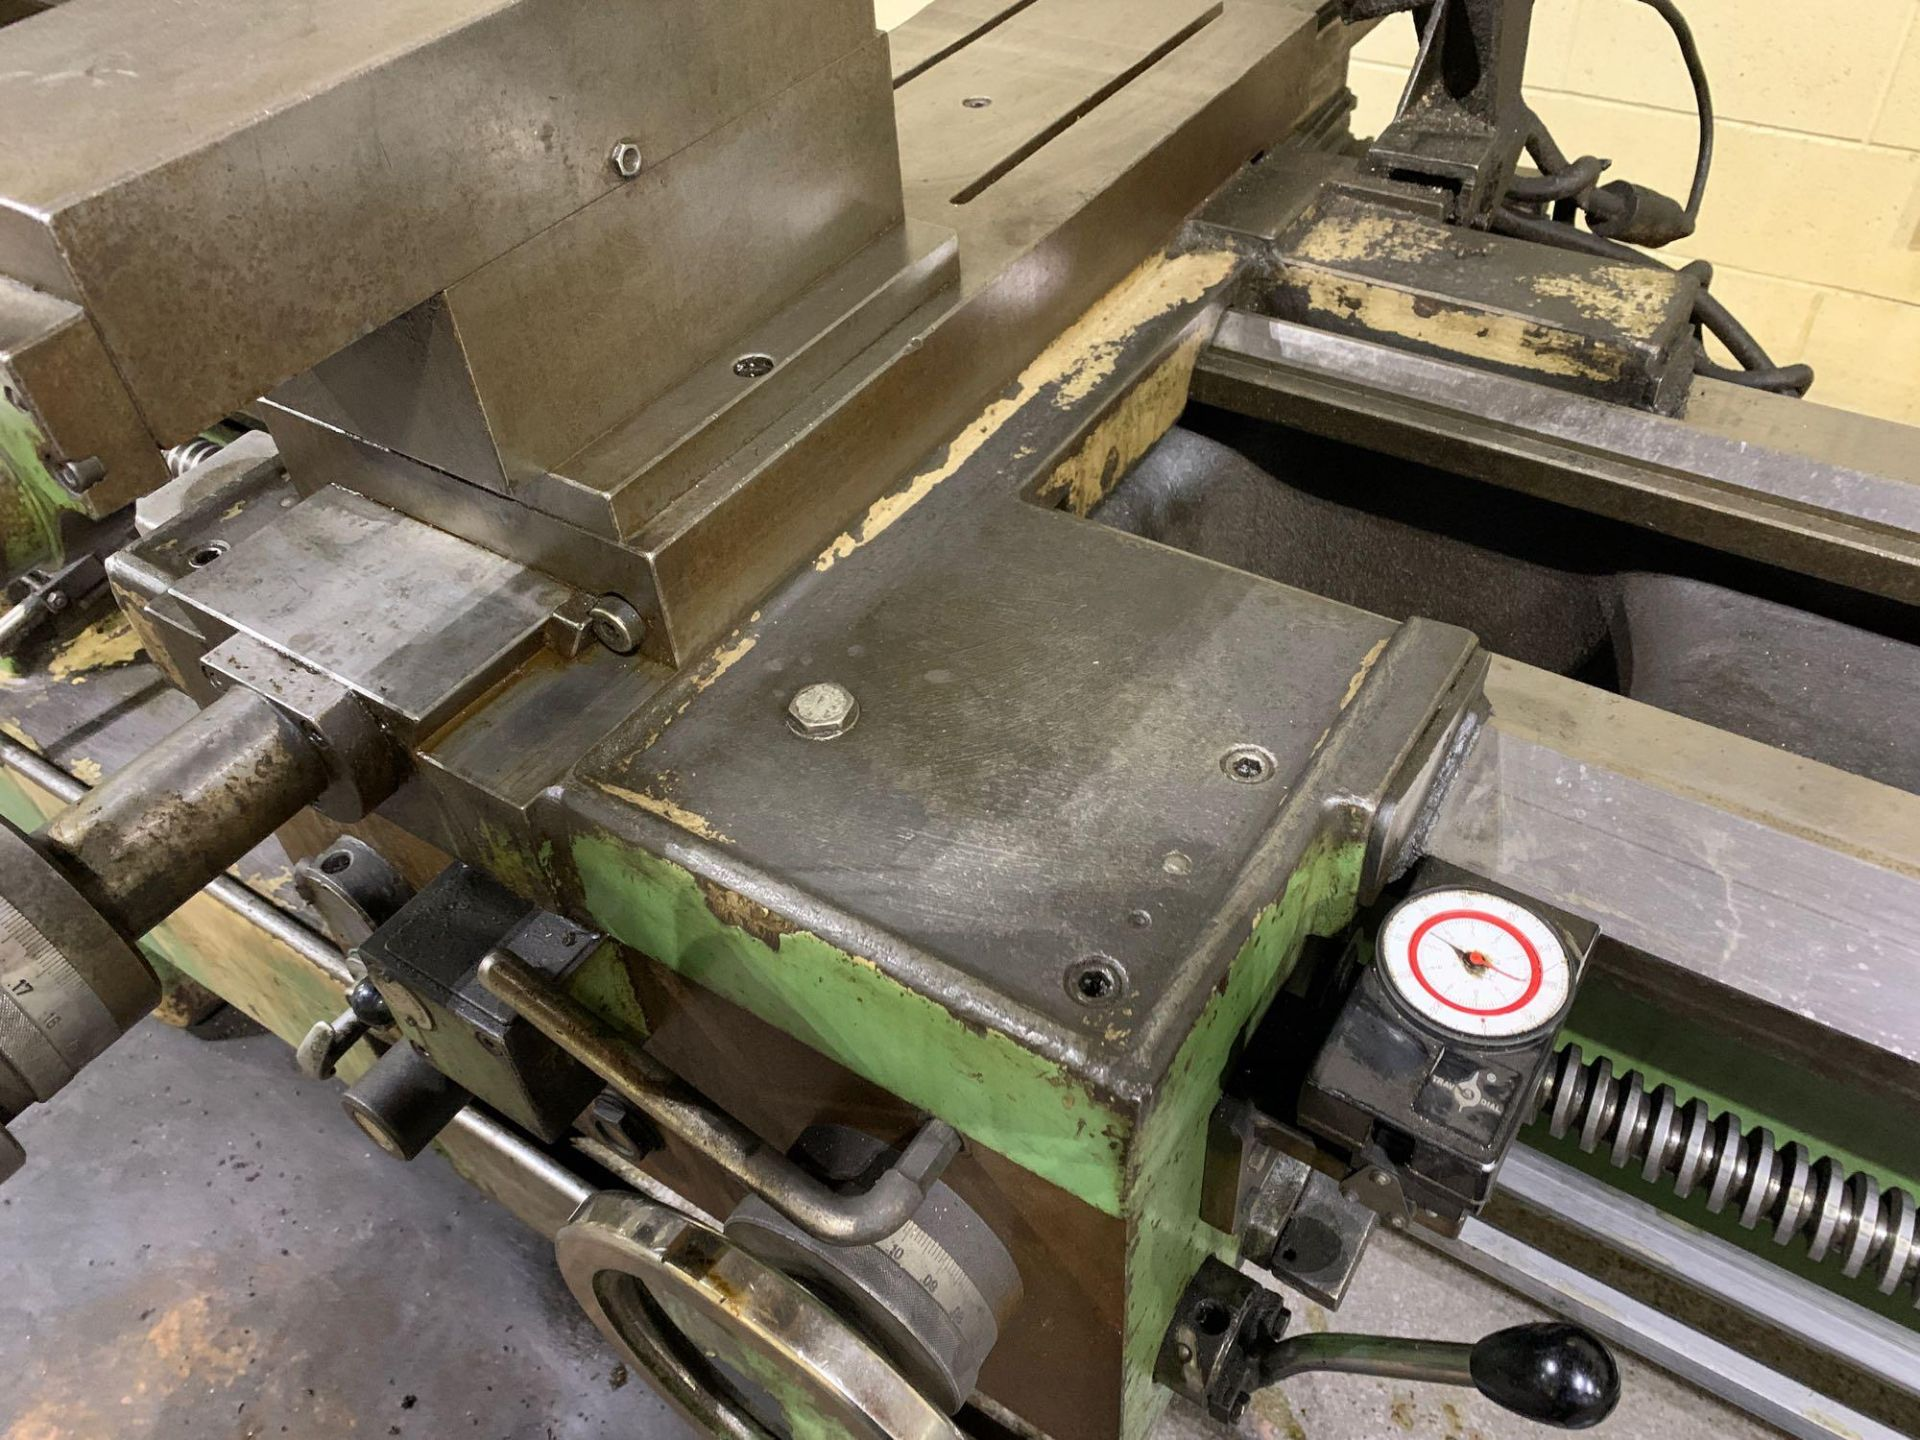 """Est Ticino Heavy Duty Gap Bed Engine Lathe Model: ETS-350 Serial Number: 1943 Rated Capacity: 27"""" x - Image 14 of 31"""